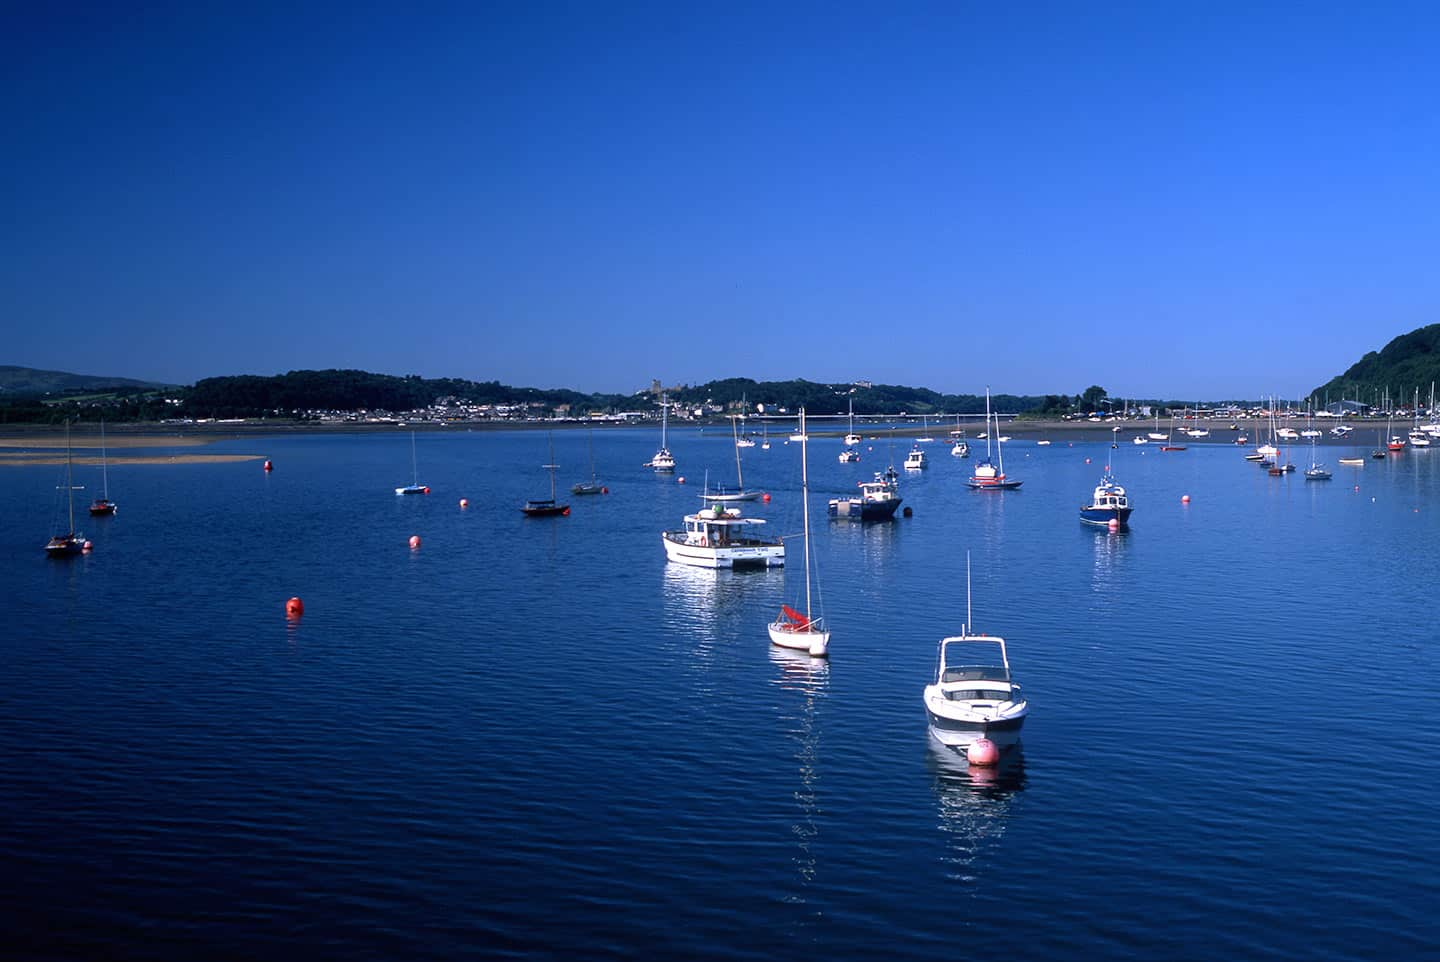 Image of the Menai Strait, Anglesey